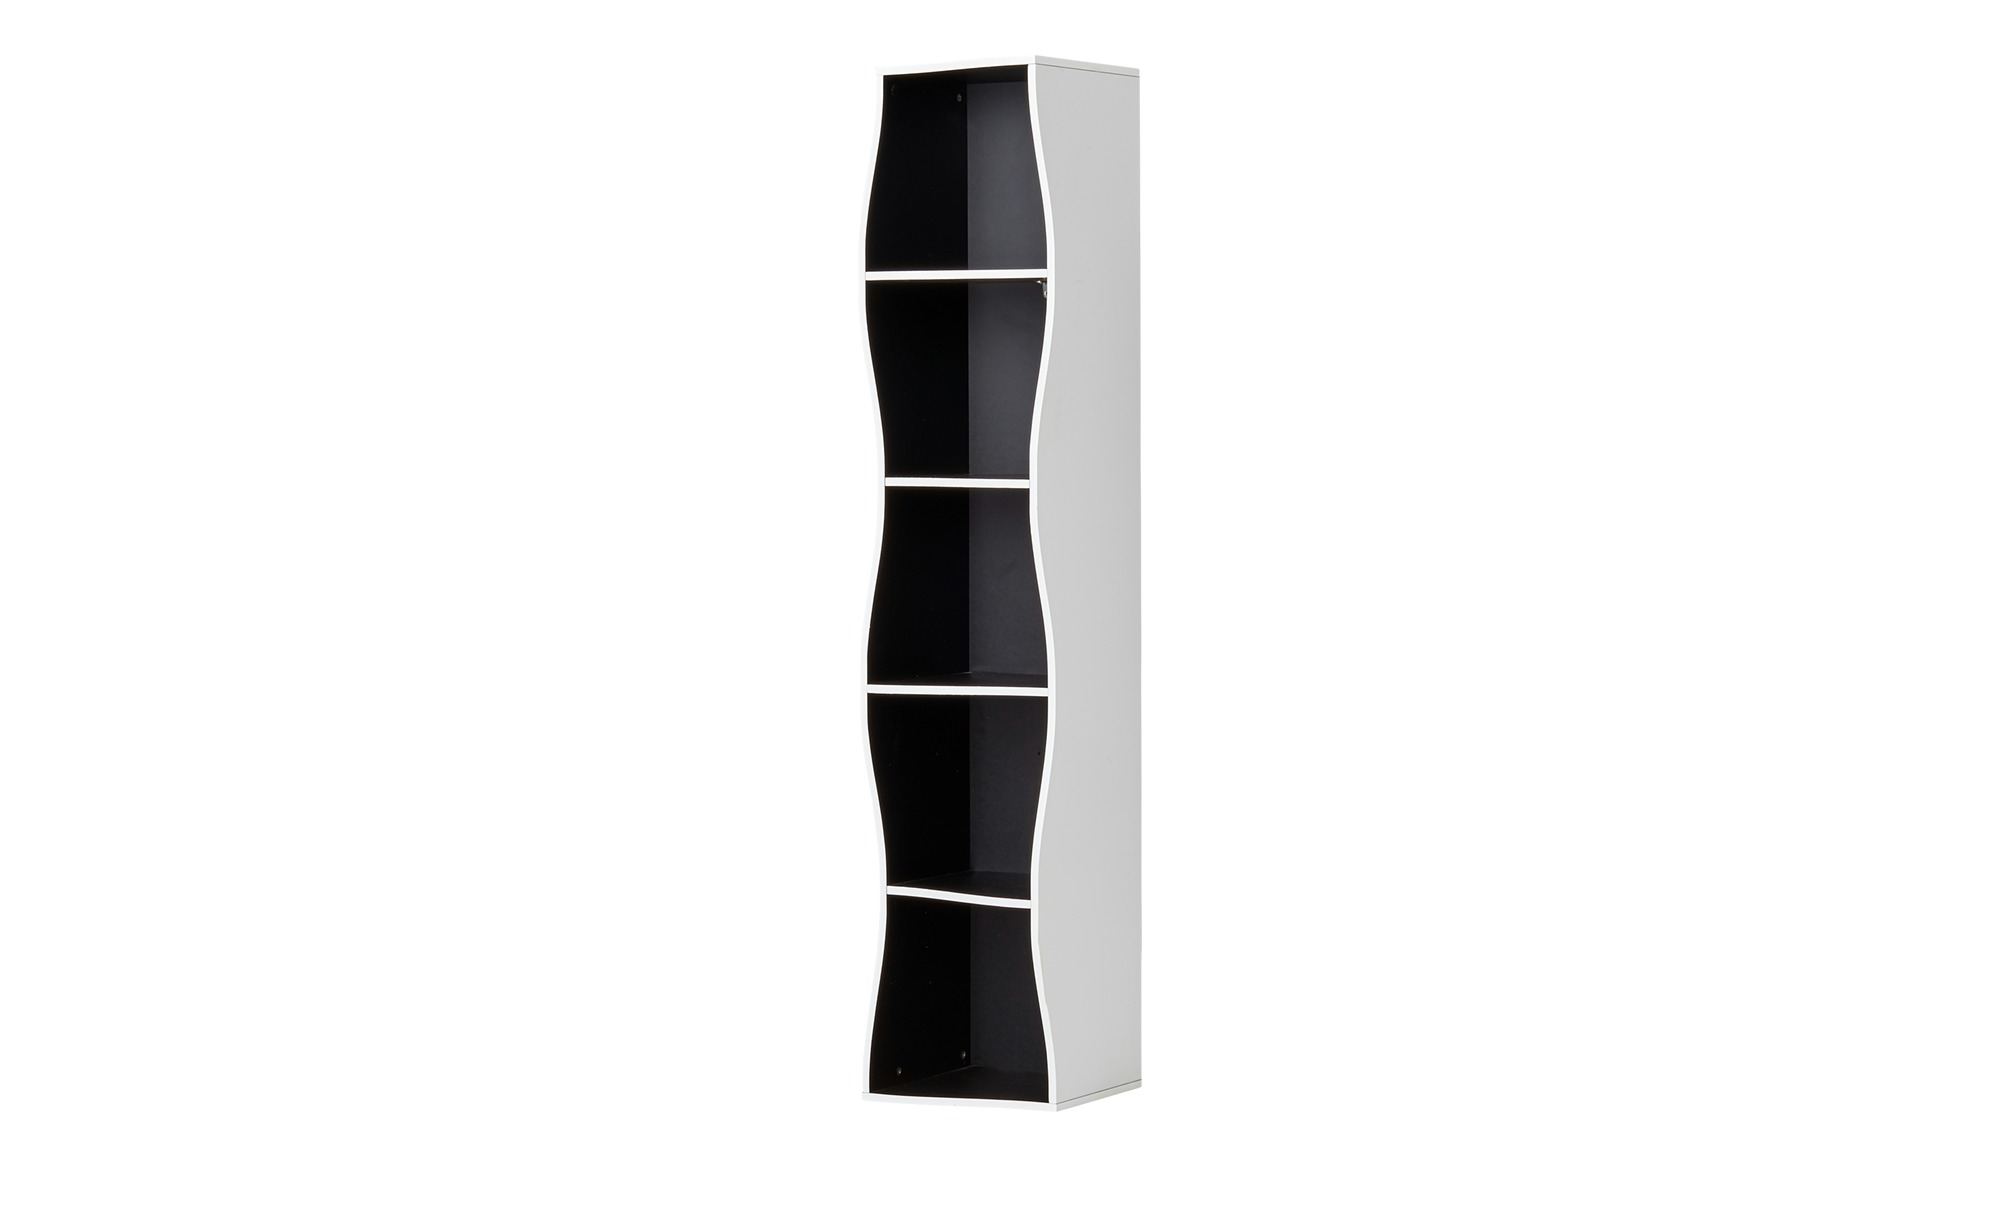 regal curve breite 30 cm h he 150 cm mehrfarbig online kaufen bei woonio. Black Bedroom Furniture Sets. Home Design Ideas